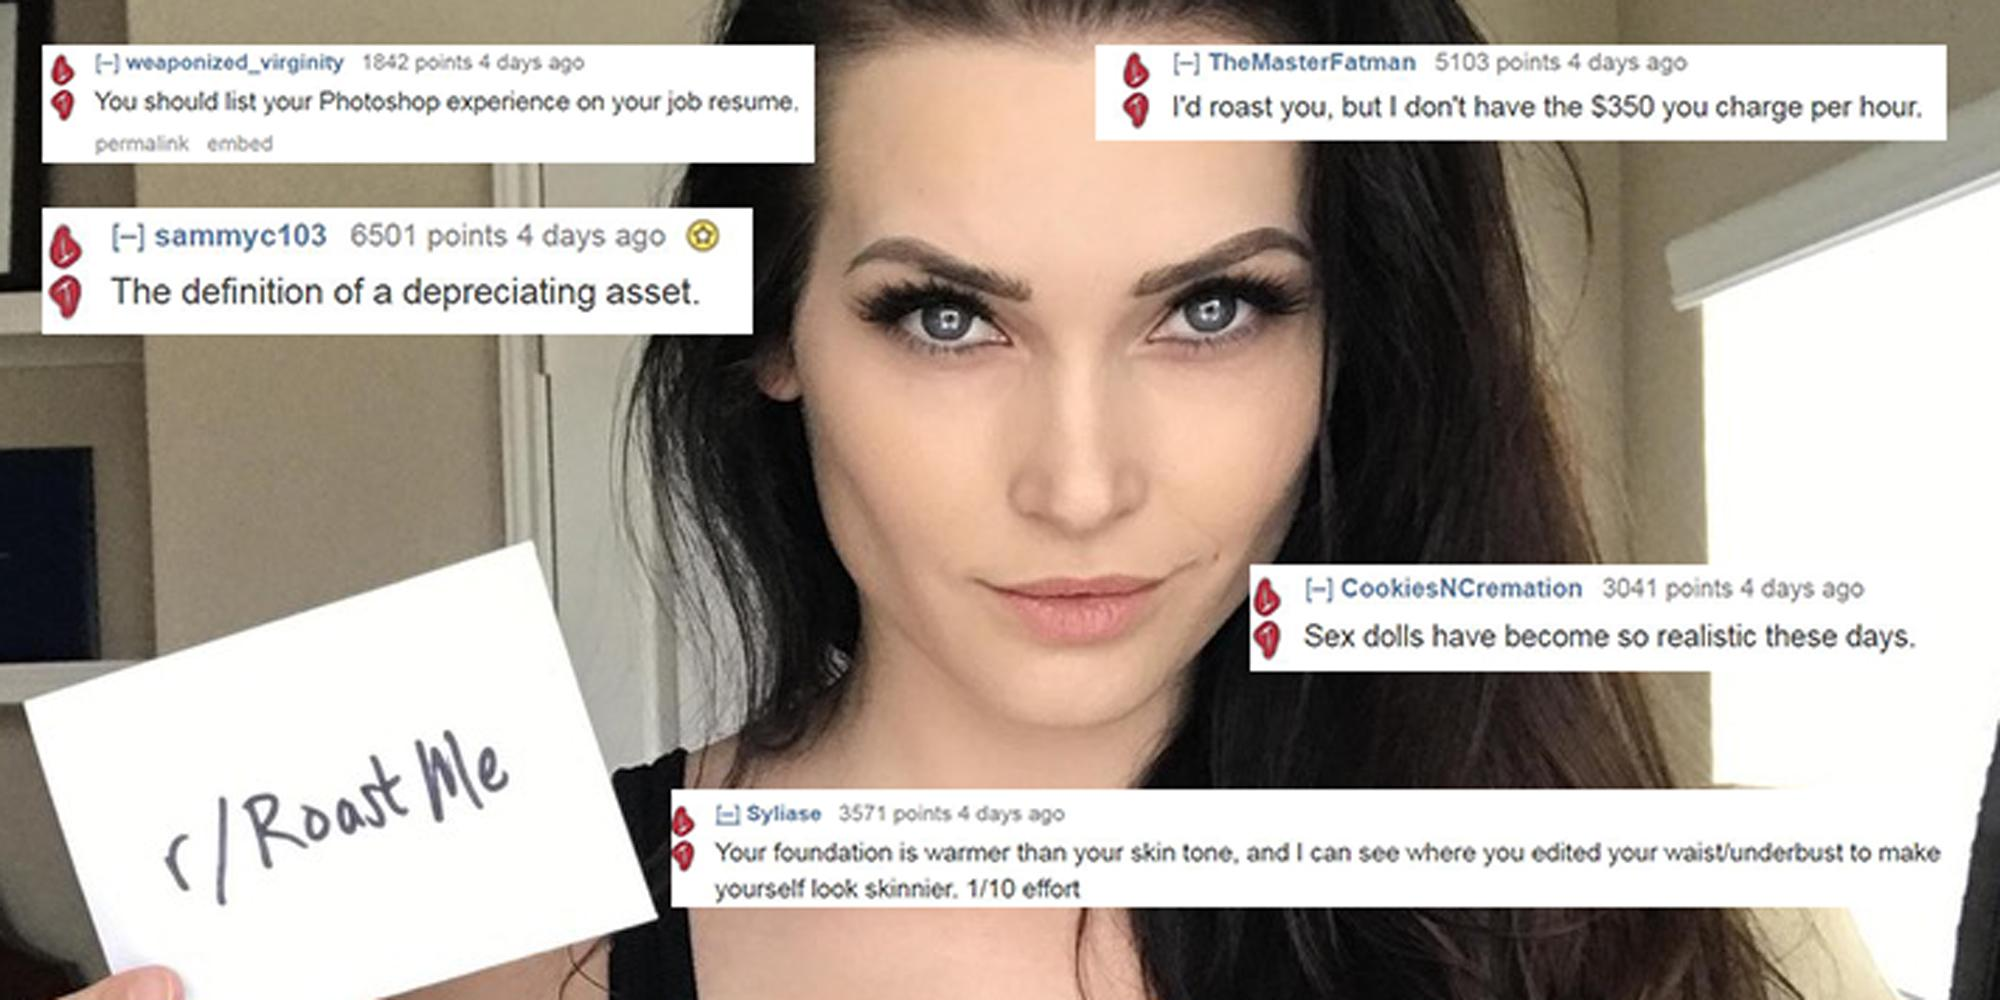 An Instagram star asked to be roasted on Reddit and then deleted her